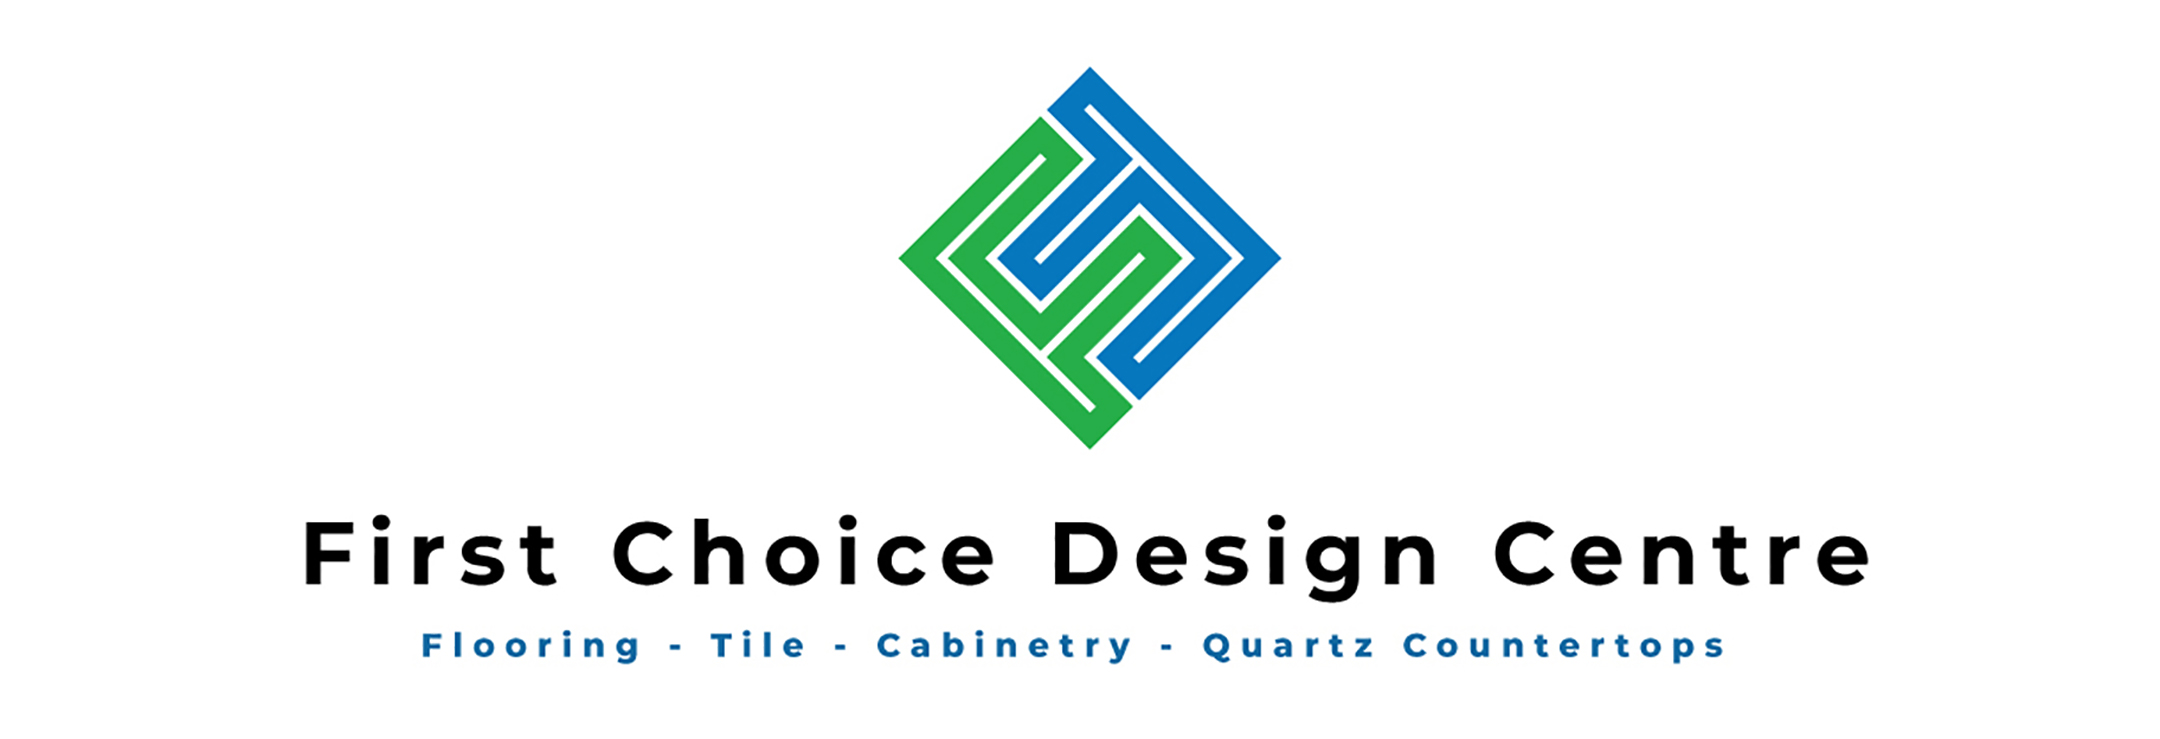 First Choice Design Centre